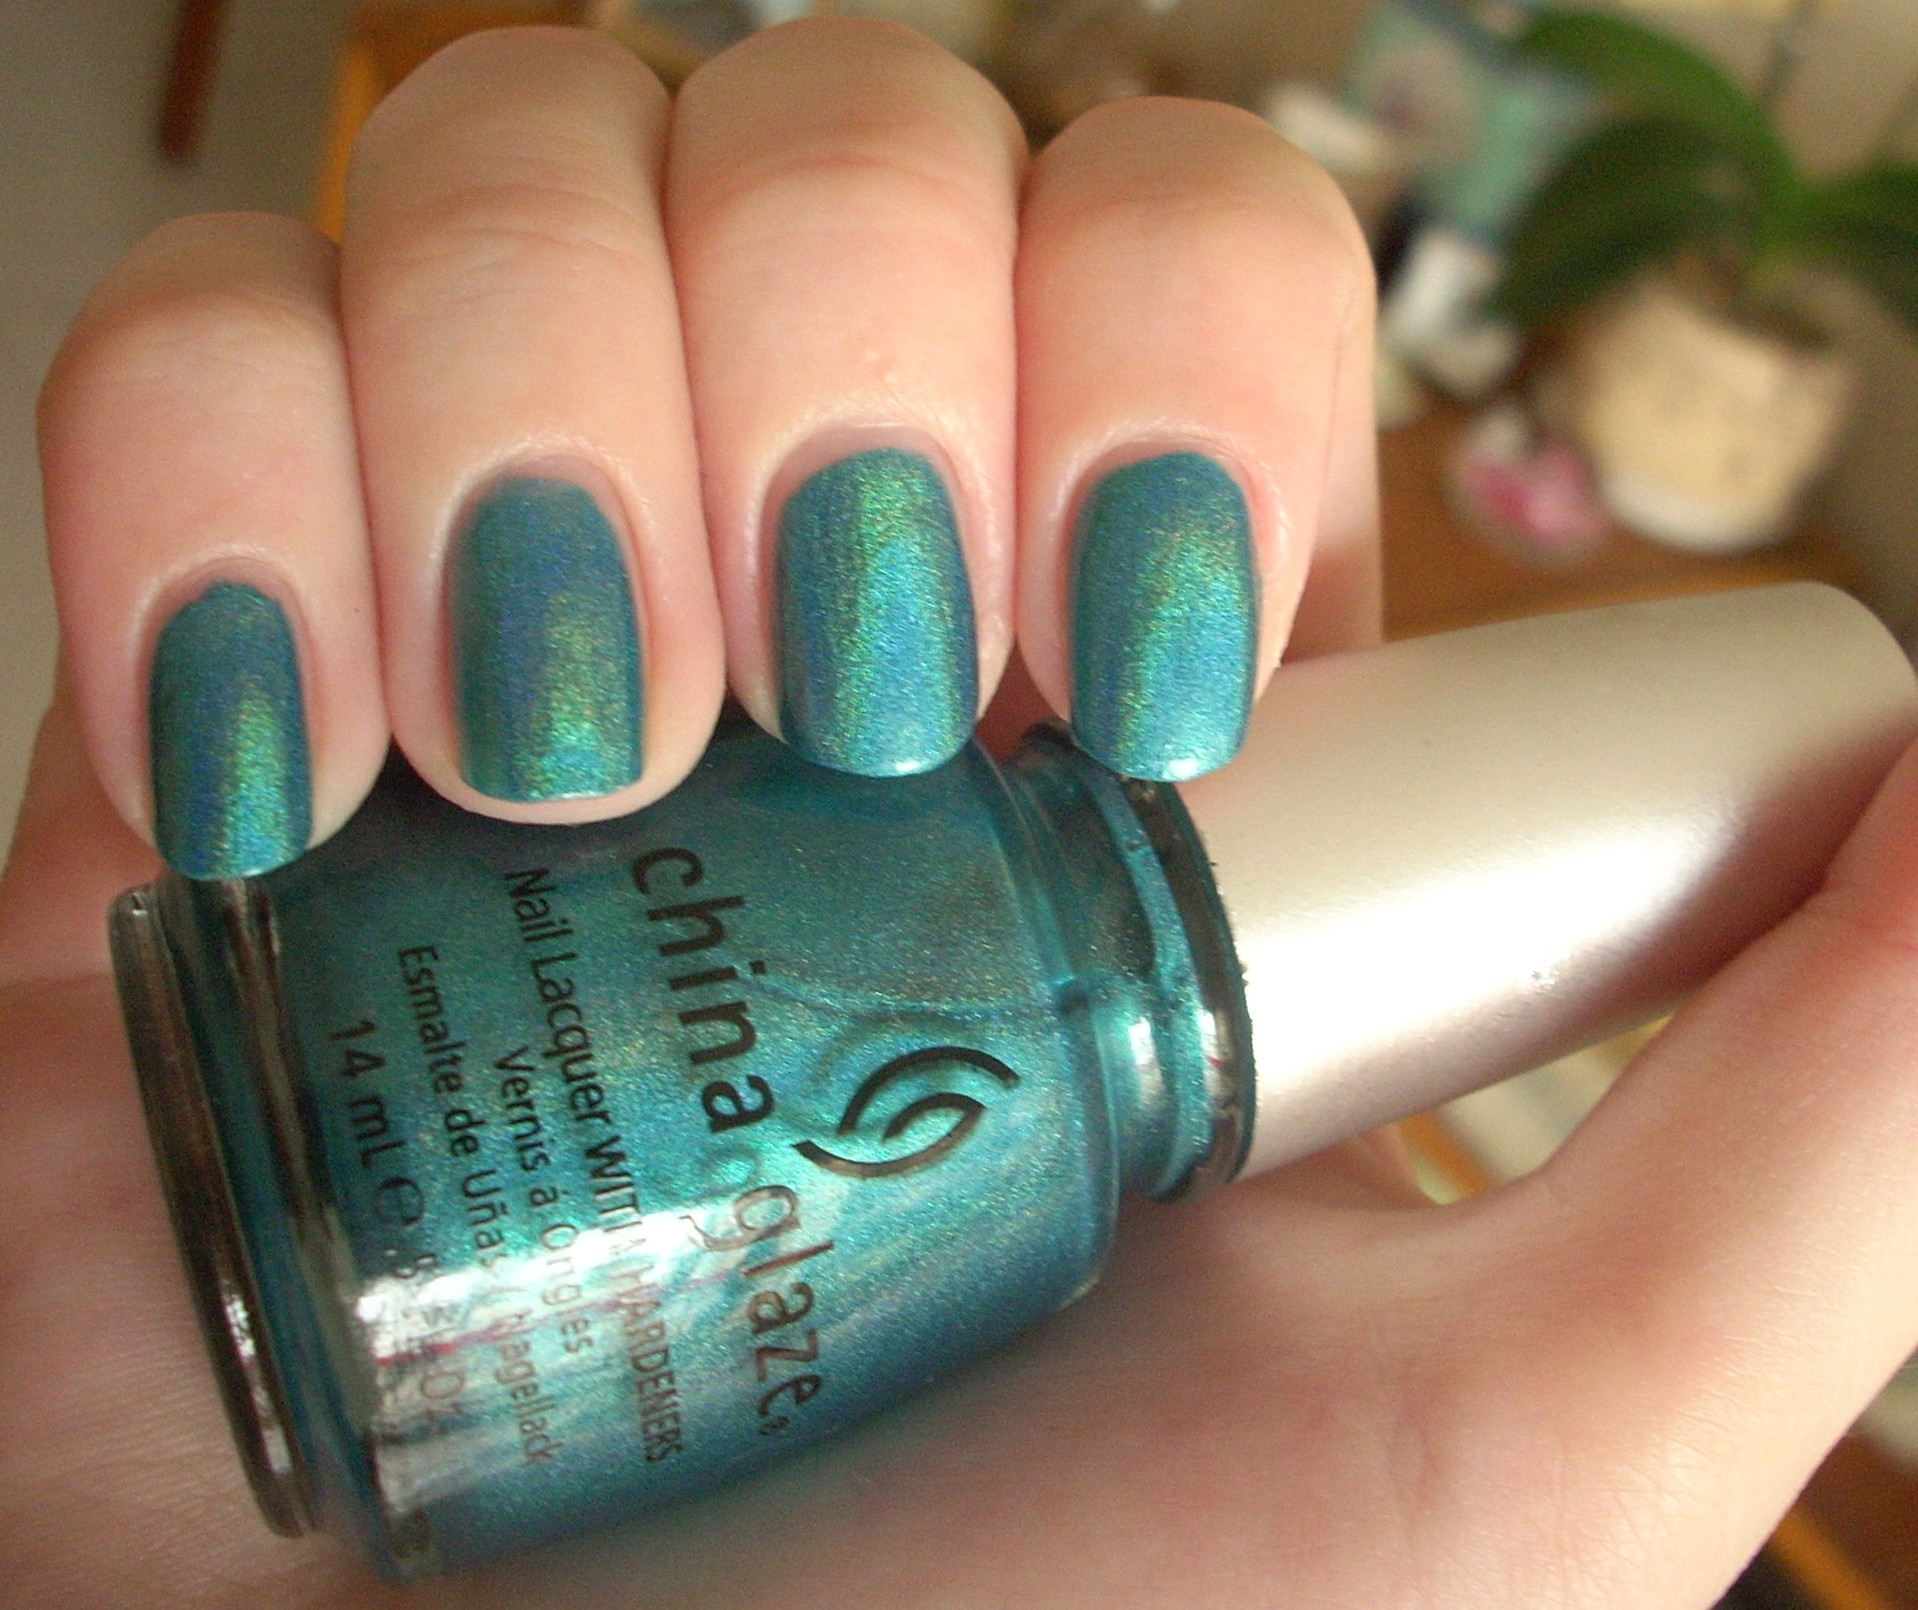 China glaze dv8 nail polish review through the looking glass holo nvjuhfo Gallery